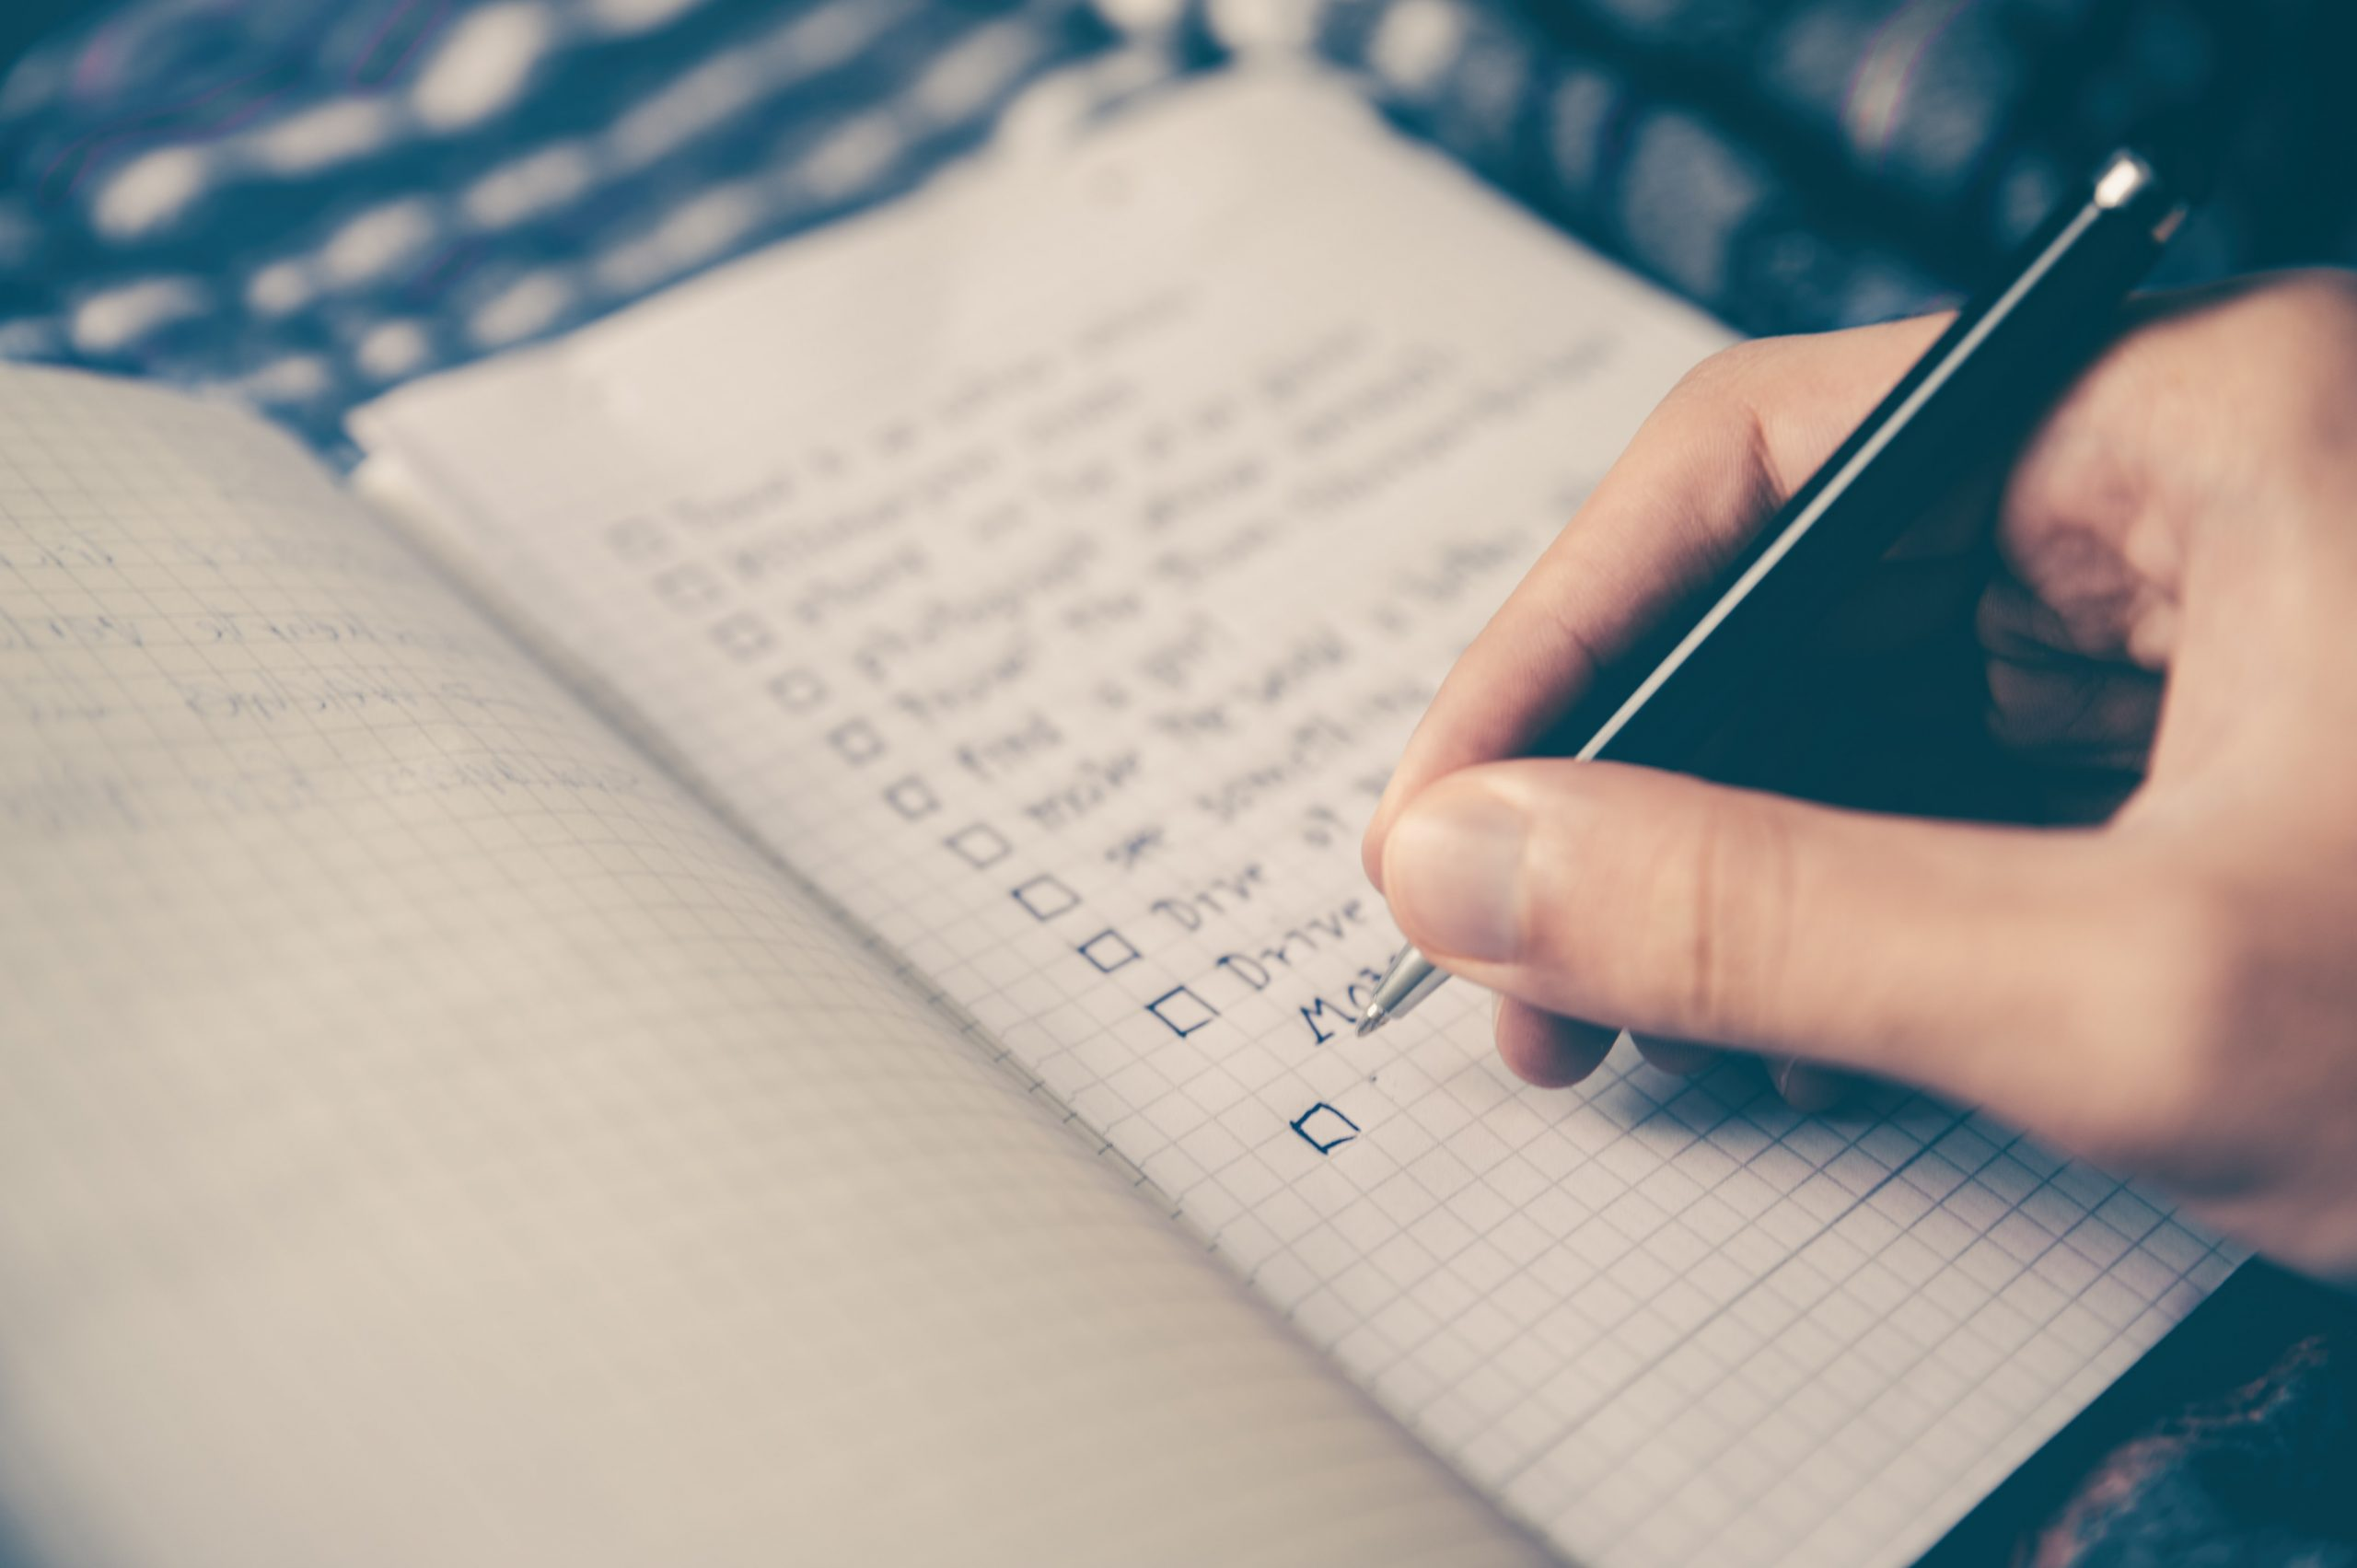 Person writing a to do list Photo by Glenn Carstens-Peters on Unsplash